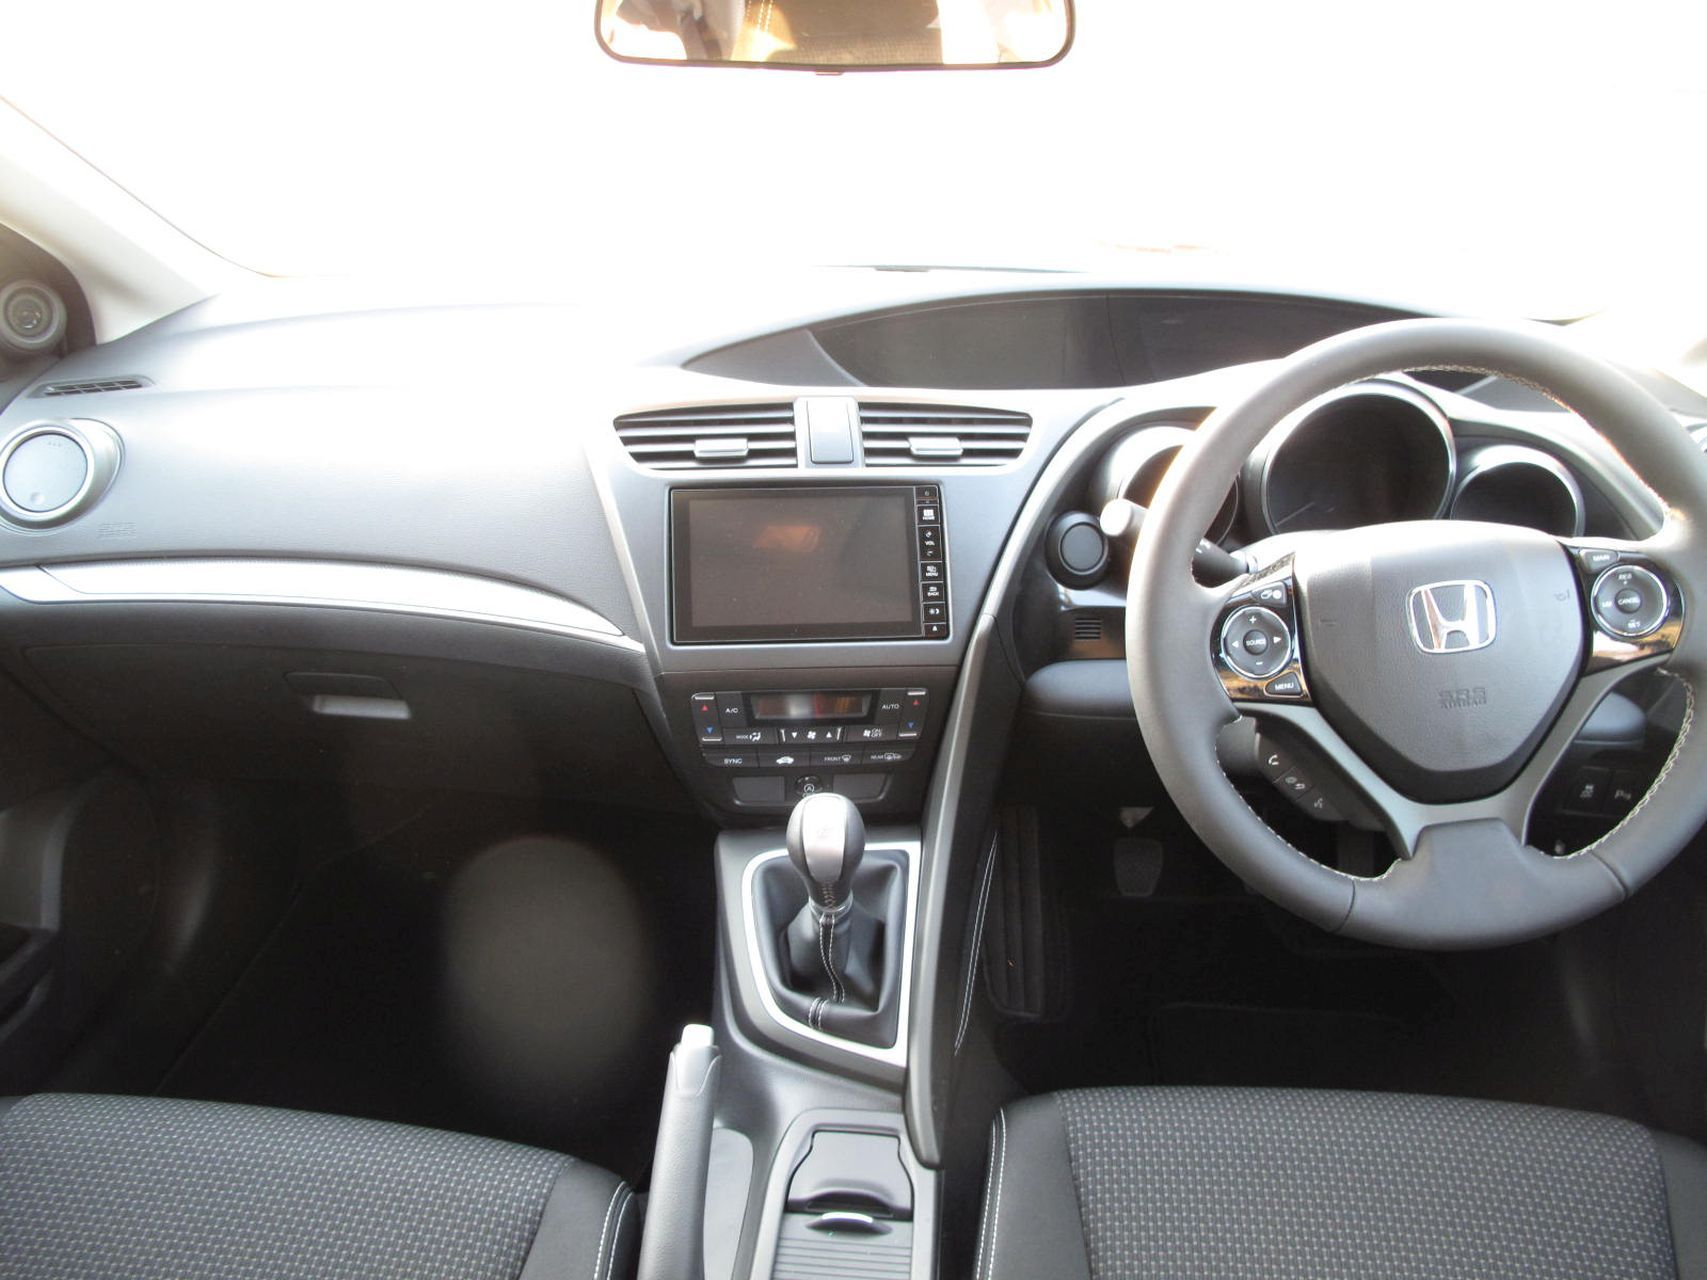 forums lease com honda at edmunds prices and accord deals car discussion